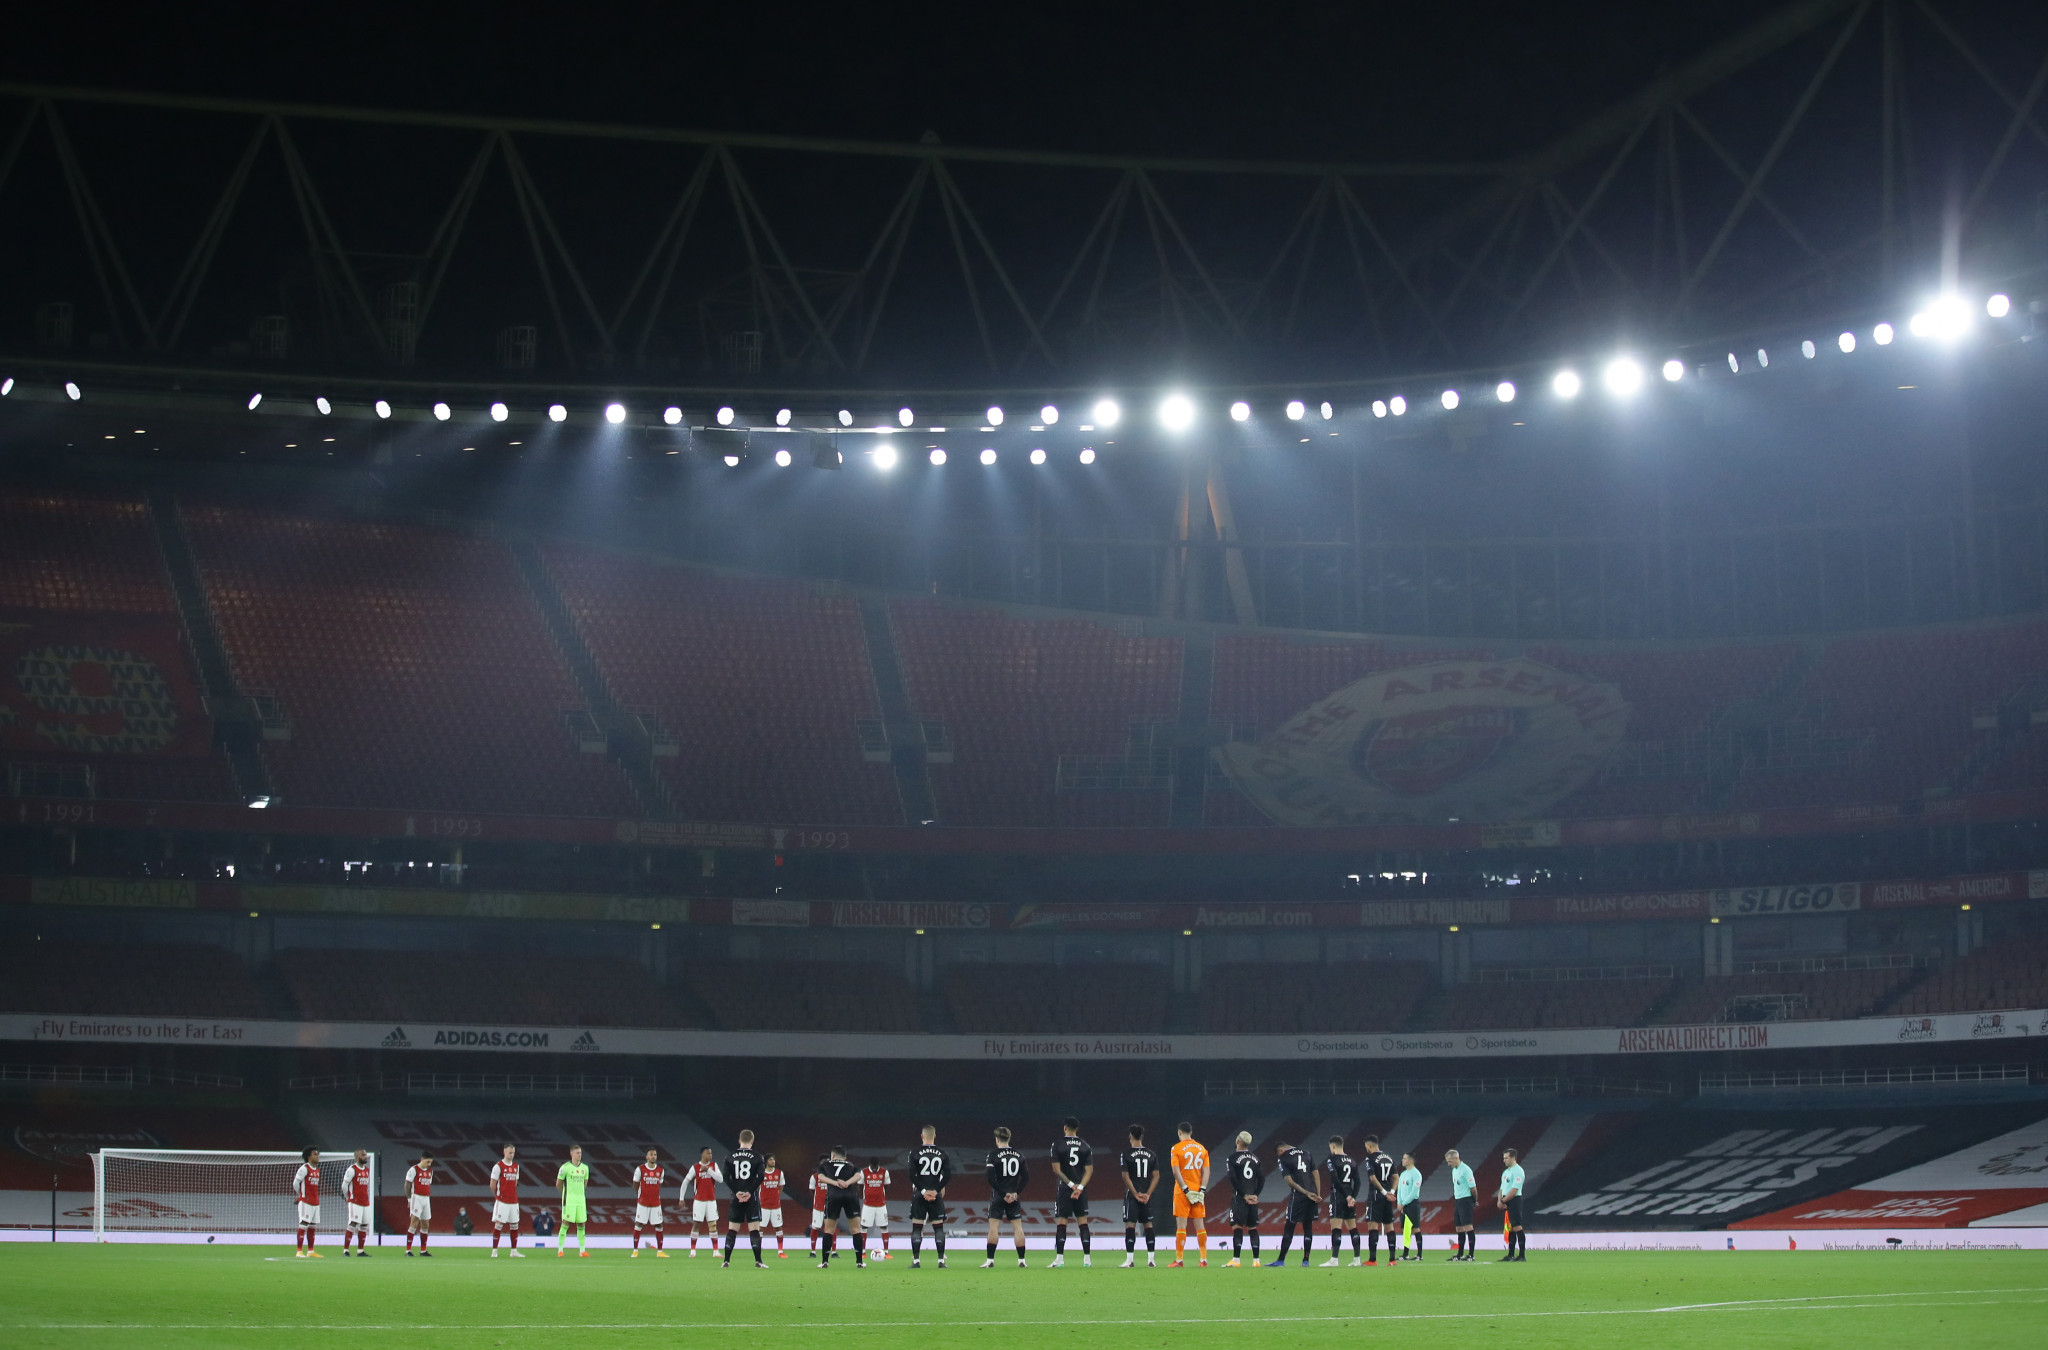 The Emirates Group is best known in sports sponsorship terms for its association with Arsenal Football Club ©Getty Images